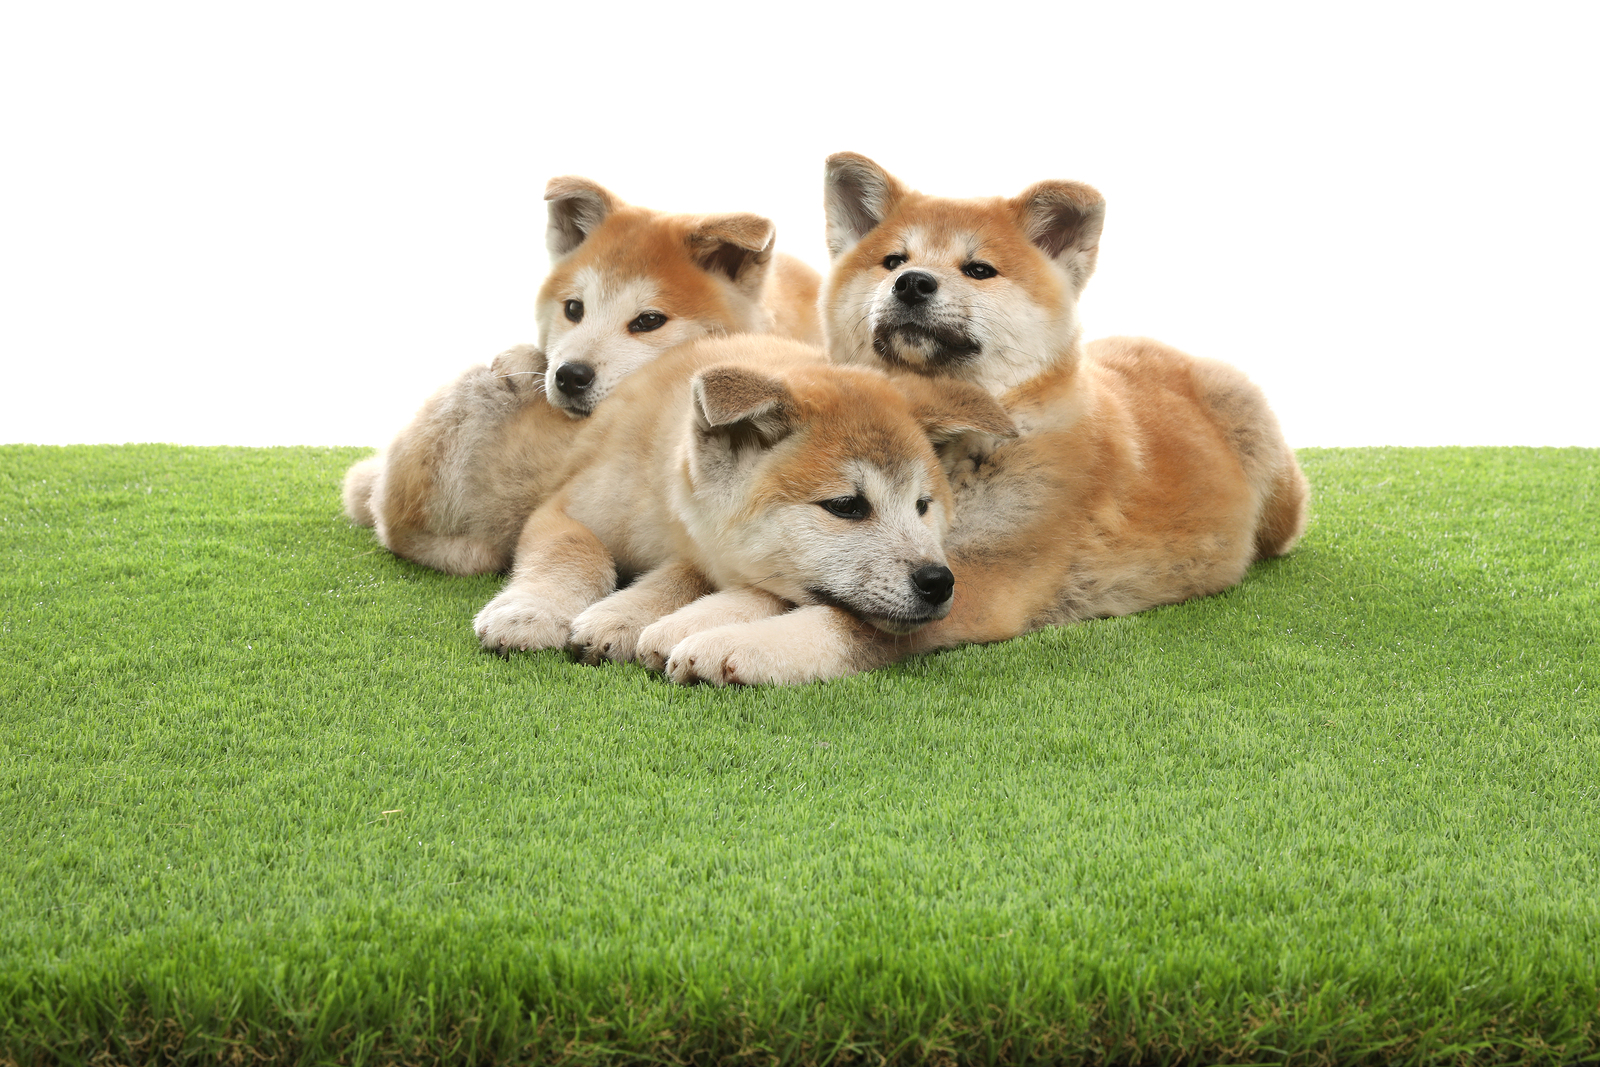 Cute akita inu puppies on artificial grass against white background